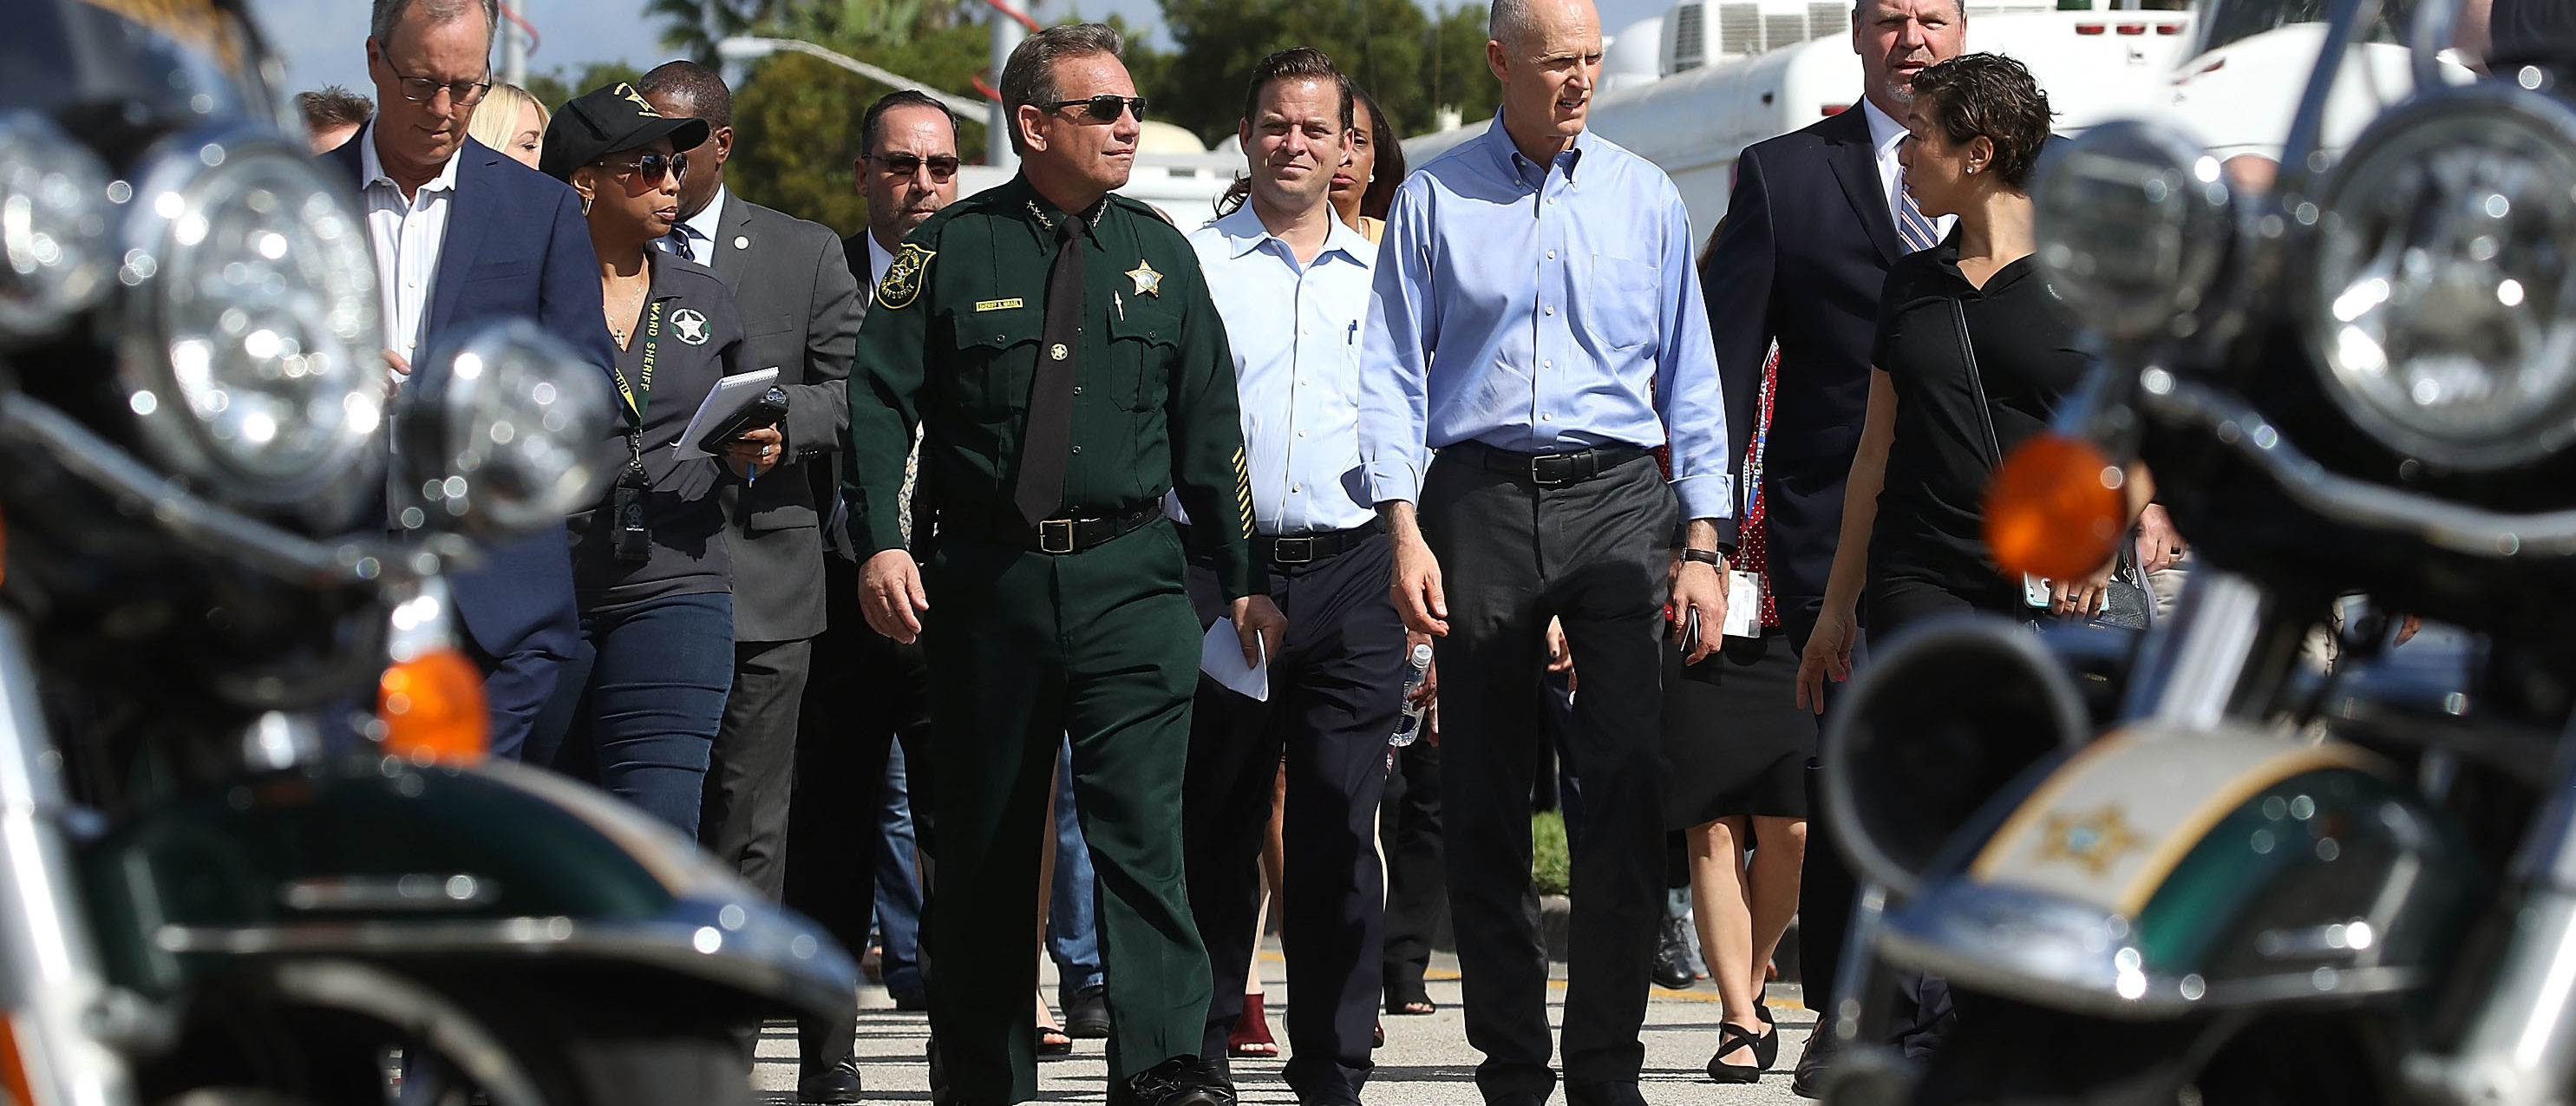 PARKLAND, FL - FEBRUARY 15: Florida Governor Rick Scott,(R), and Broward County Sheriff, Scott Israel (L), walk up to the media to speak about the mass shooting at Marjory Stoneman Douglas High School where 17 people were killed yesterday, on February 15, 2018 in Parkland, Florida. Police arrested the suspect after a short manhunt, and have identified him as 19 year old former student Nikolas Cruz. (Photo by Mark Wilson/Getty Images)